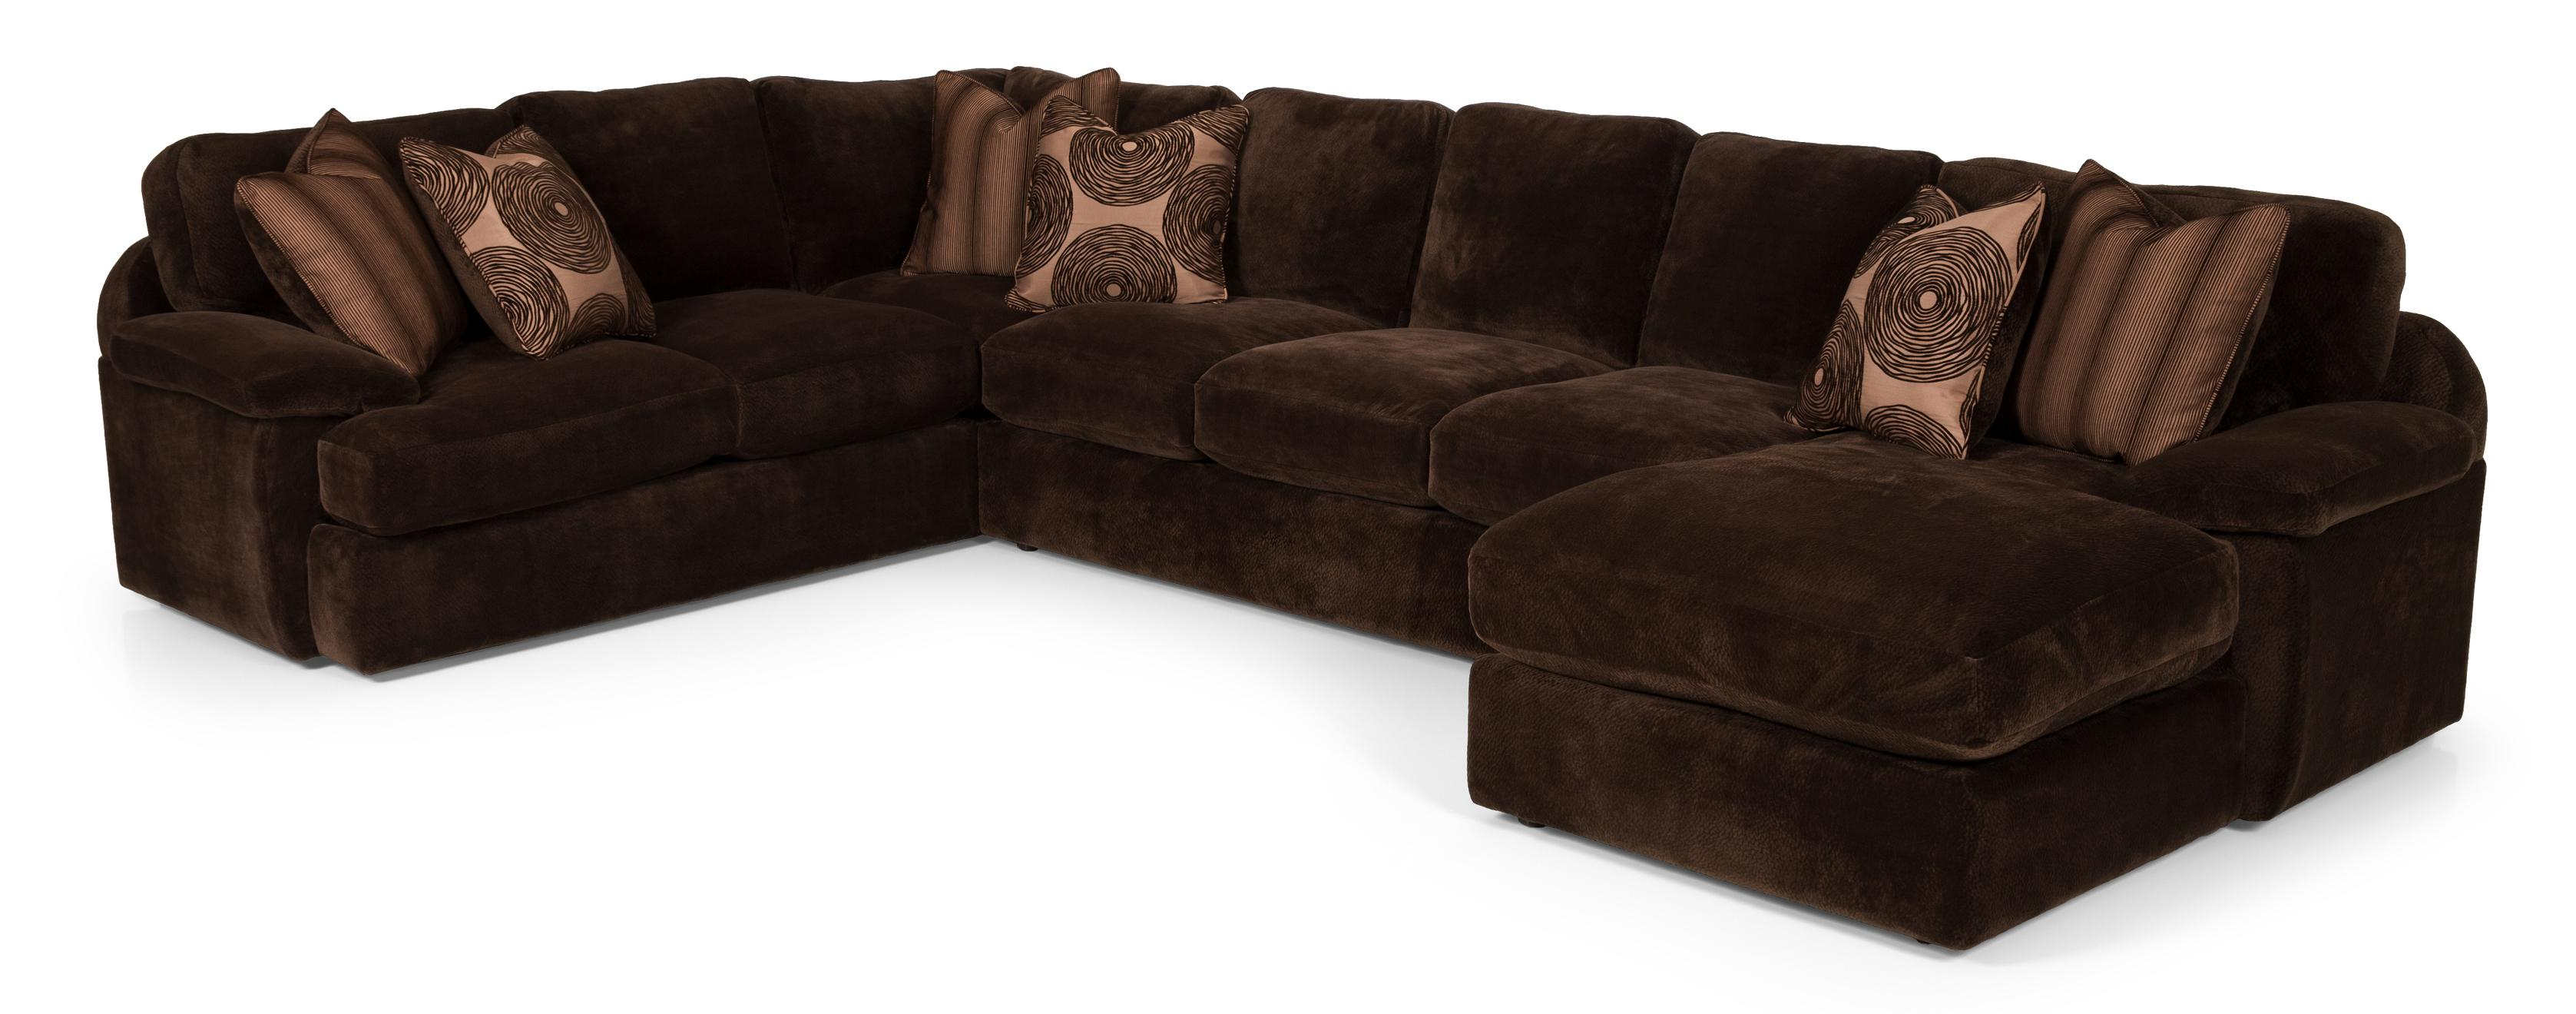 3 Pc Sectional Sofa w/ LAF Chaise